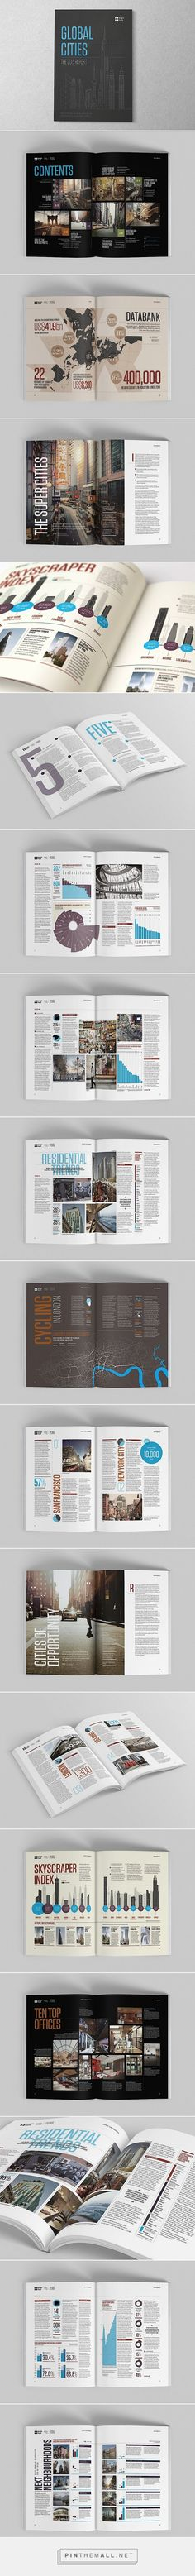 Editorial Design Inspiration: Global Cities Report